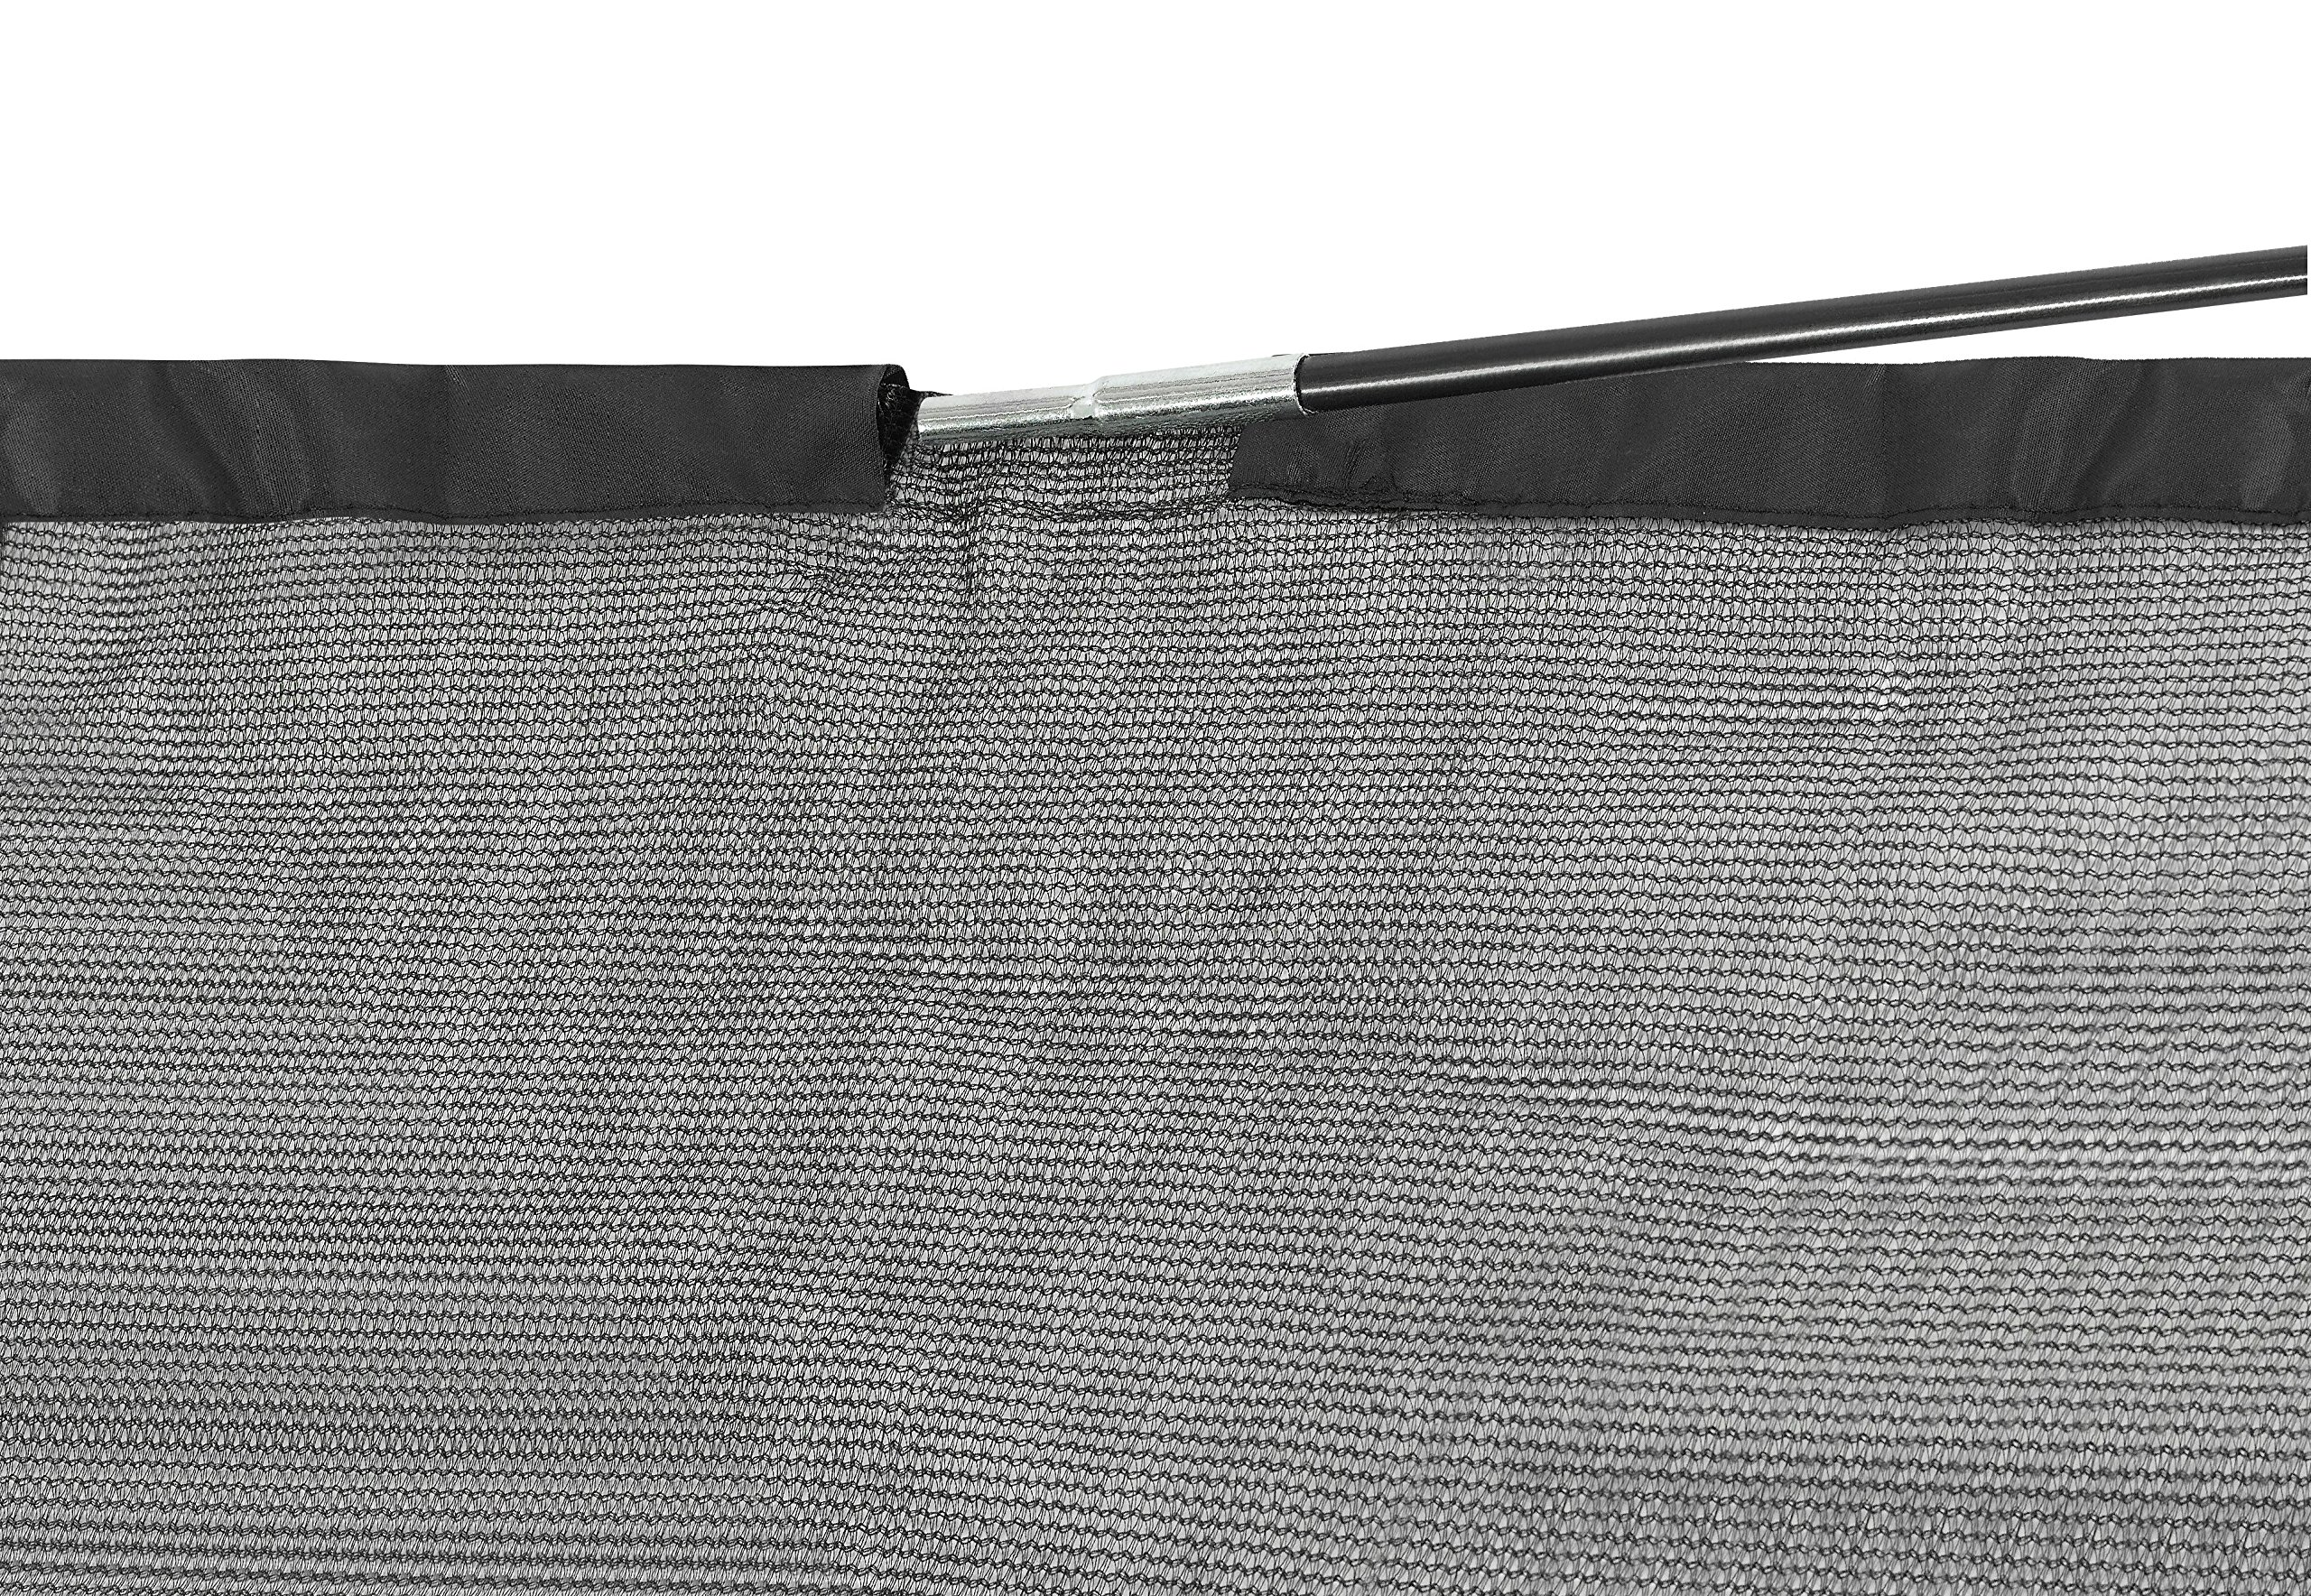 SKYTRIC Trampoline Enclosure Net (Universal) 15 ft Frame: 5 Curved Pole: with Top Ring Enclosure Systems -Sleeve on top Type- by SKYTRIC (Image #4)